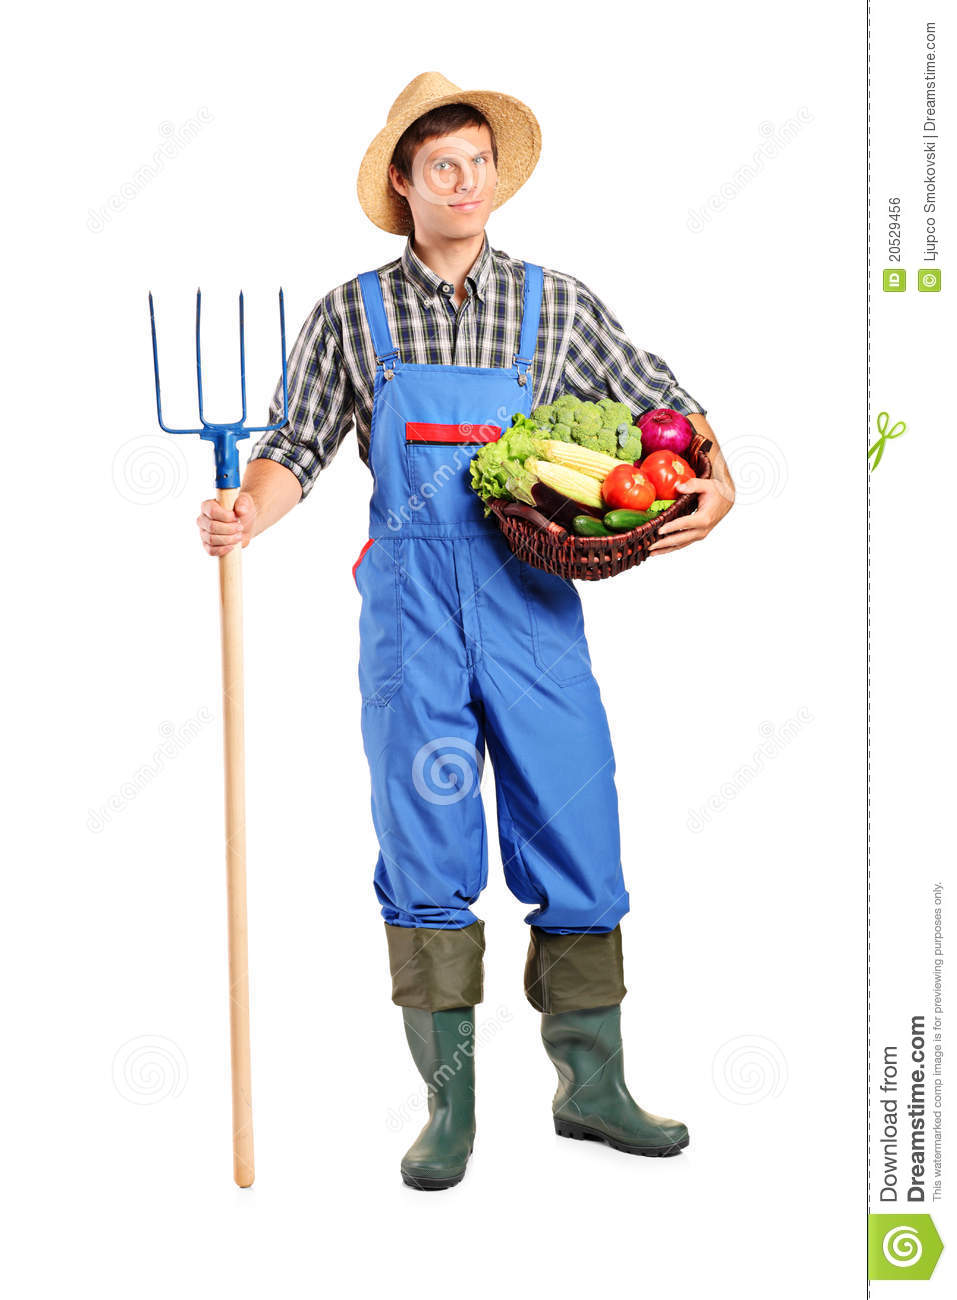 Farmer holding a pitchfork and bucket